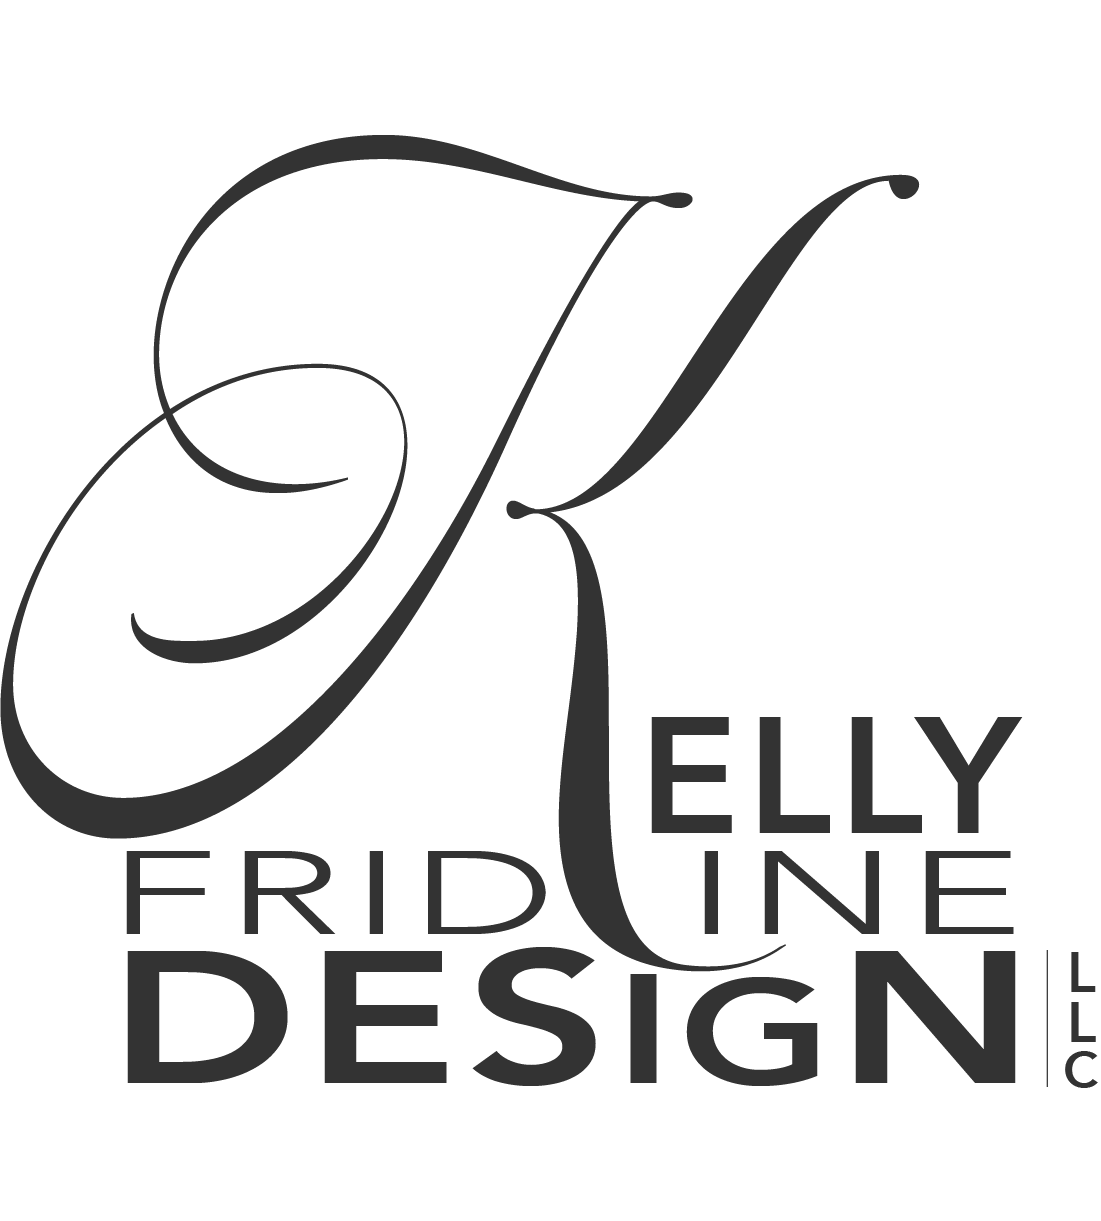 Kelly Fridline Design, LLC